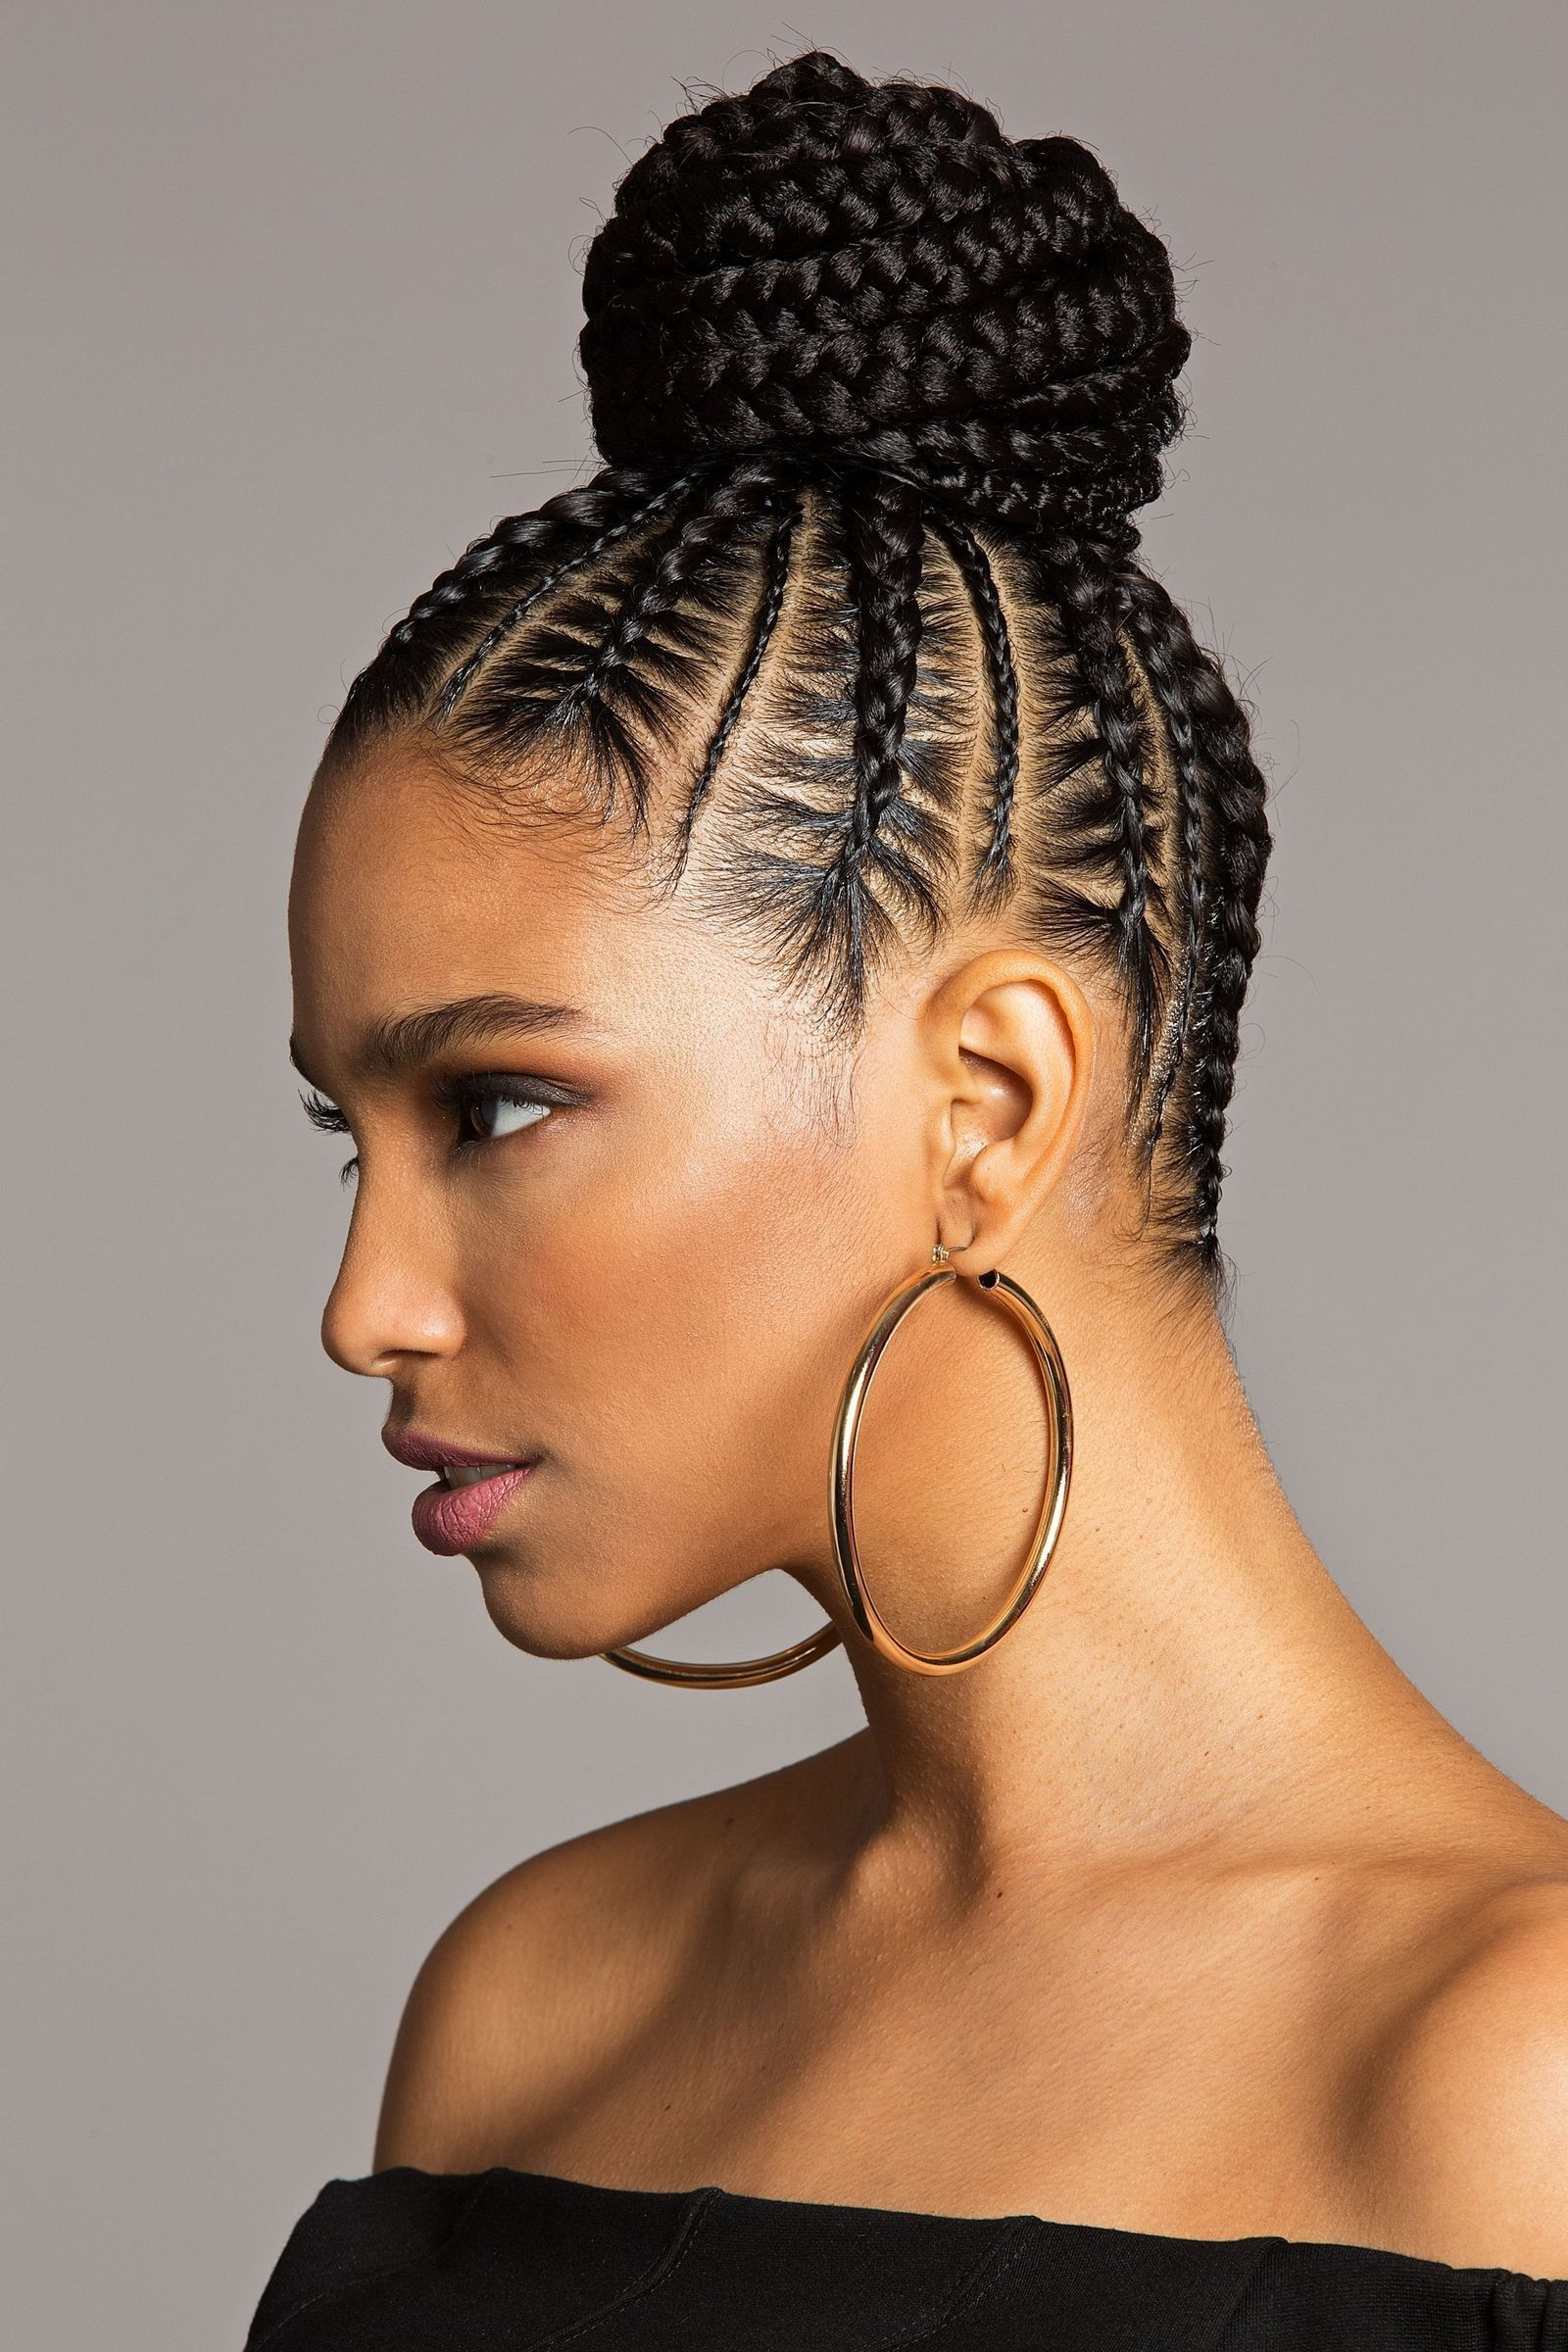 Pin By Monique Keller On Hurr Hunty Cornrow Braid Styles African Braids Hairstyles Pictures Cute Hairstyles For Teens